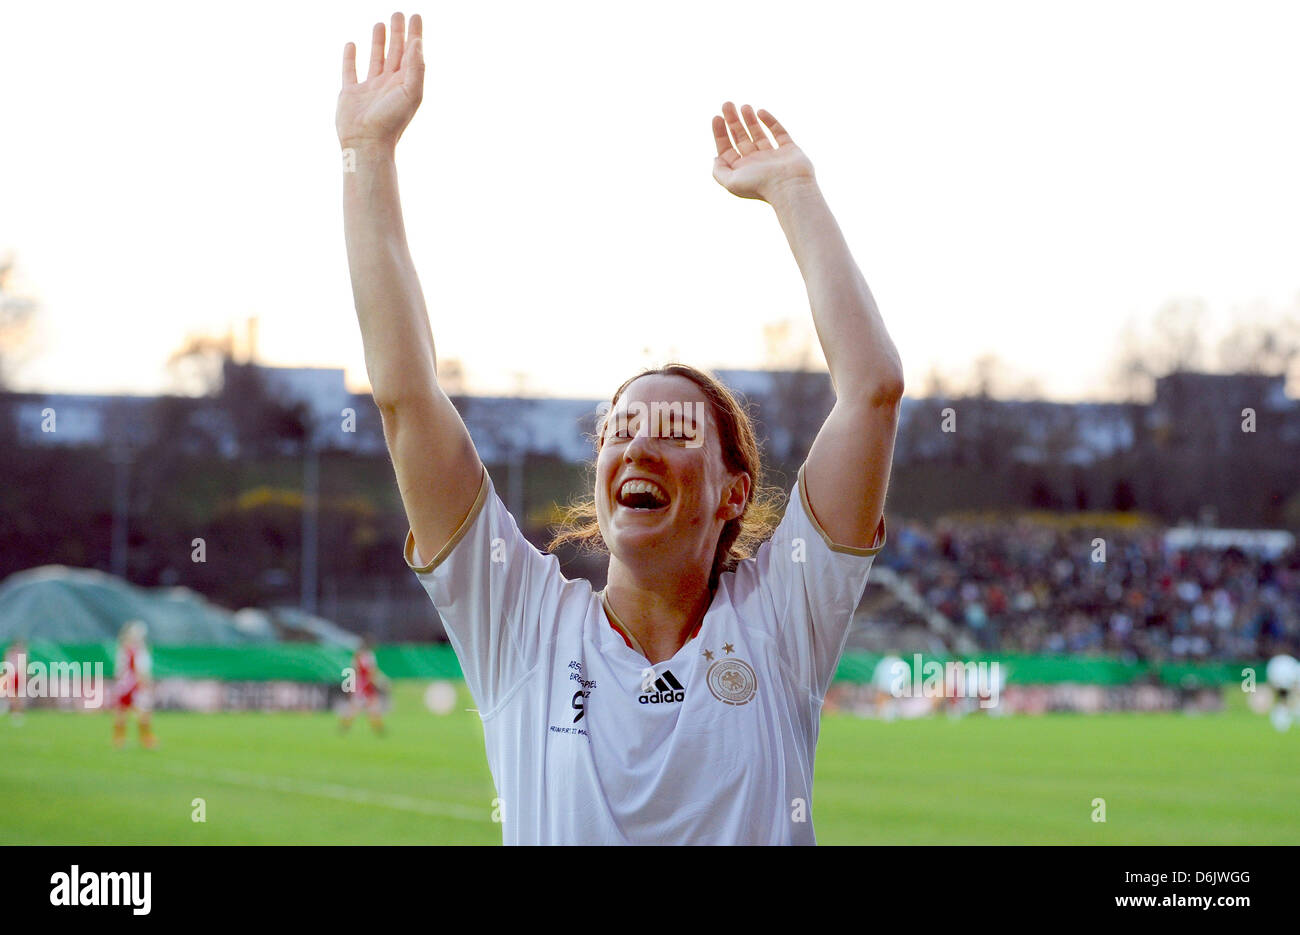 FRANKFURT AM MAIN, GERMANY - MARCH 27: Birgit Prinz celebrates during the Birgit Prinz farewell match between Germany - Stock Image